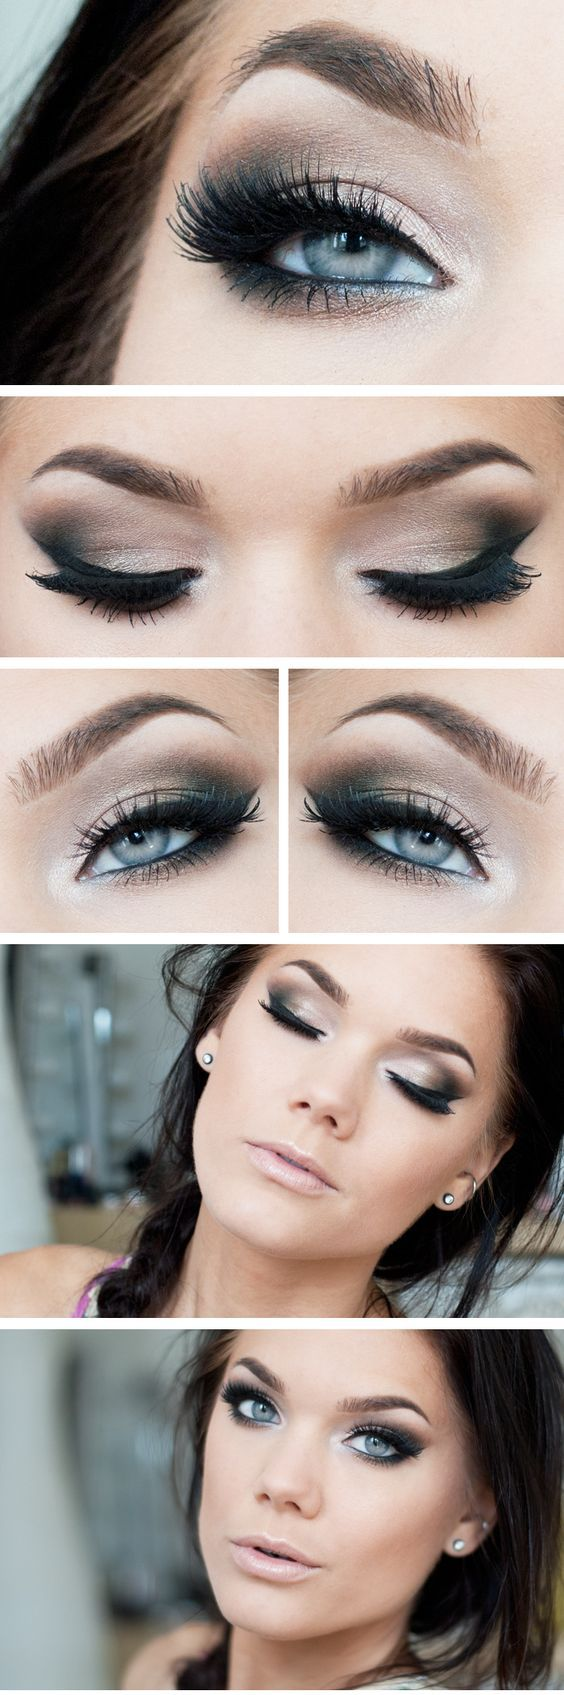 Best Ideas For Makeup Tutorials The Best Makeup Tips To Make Your